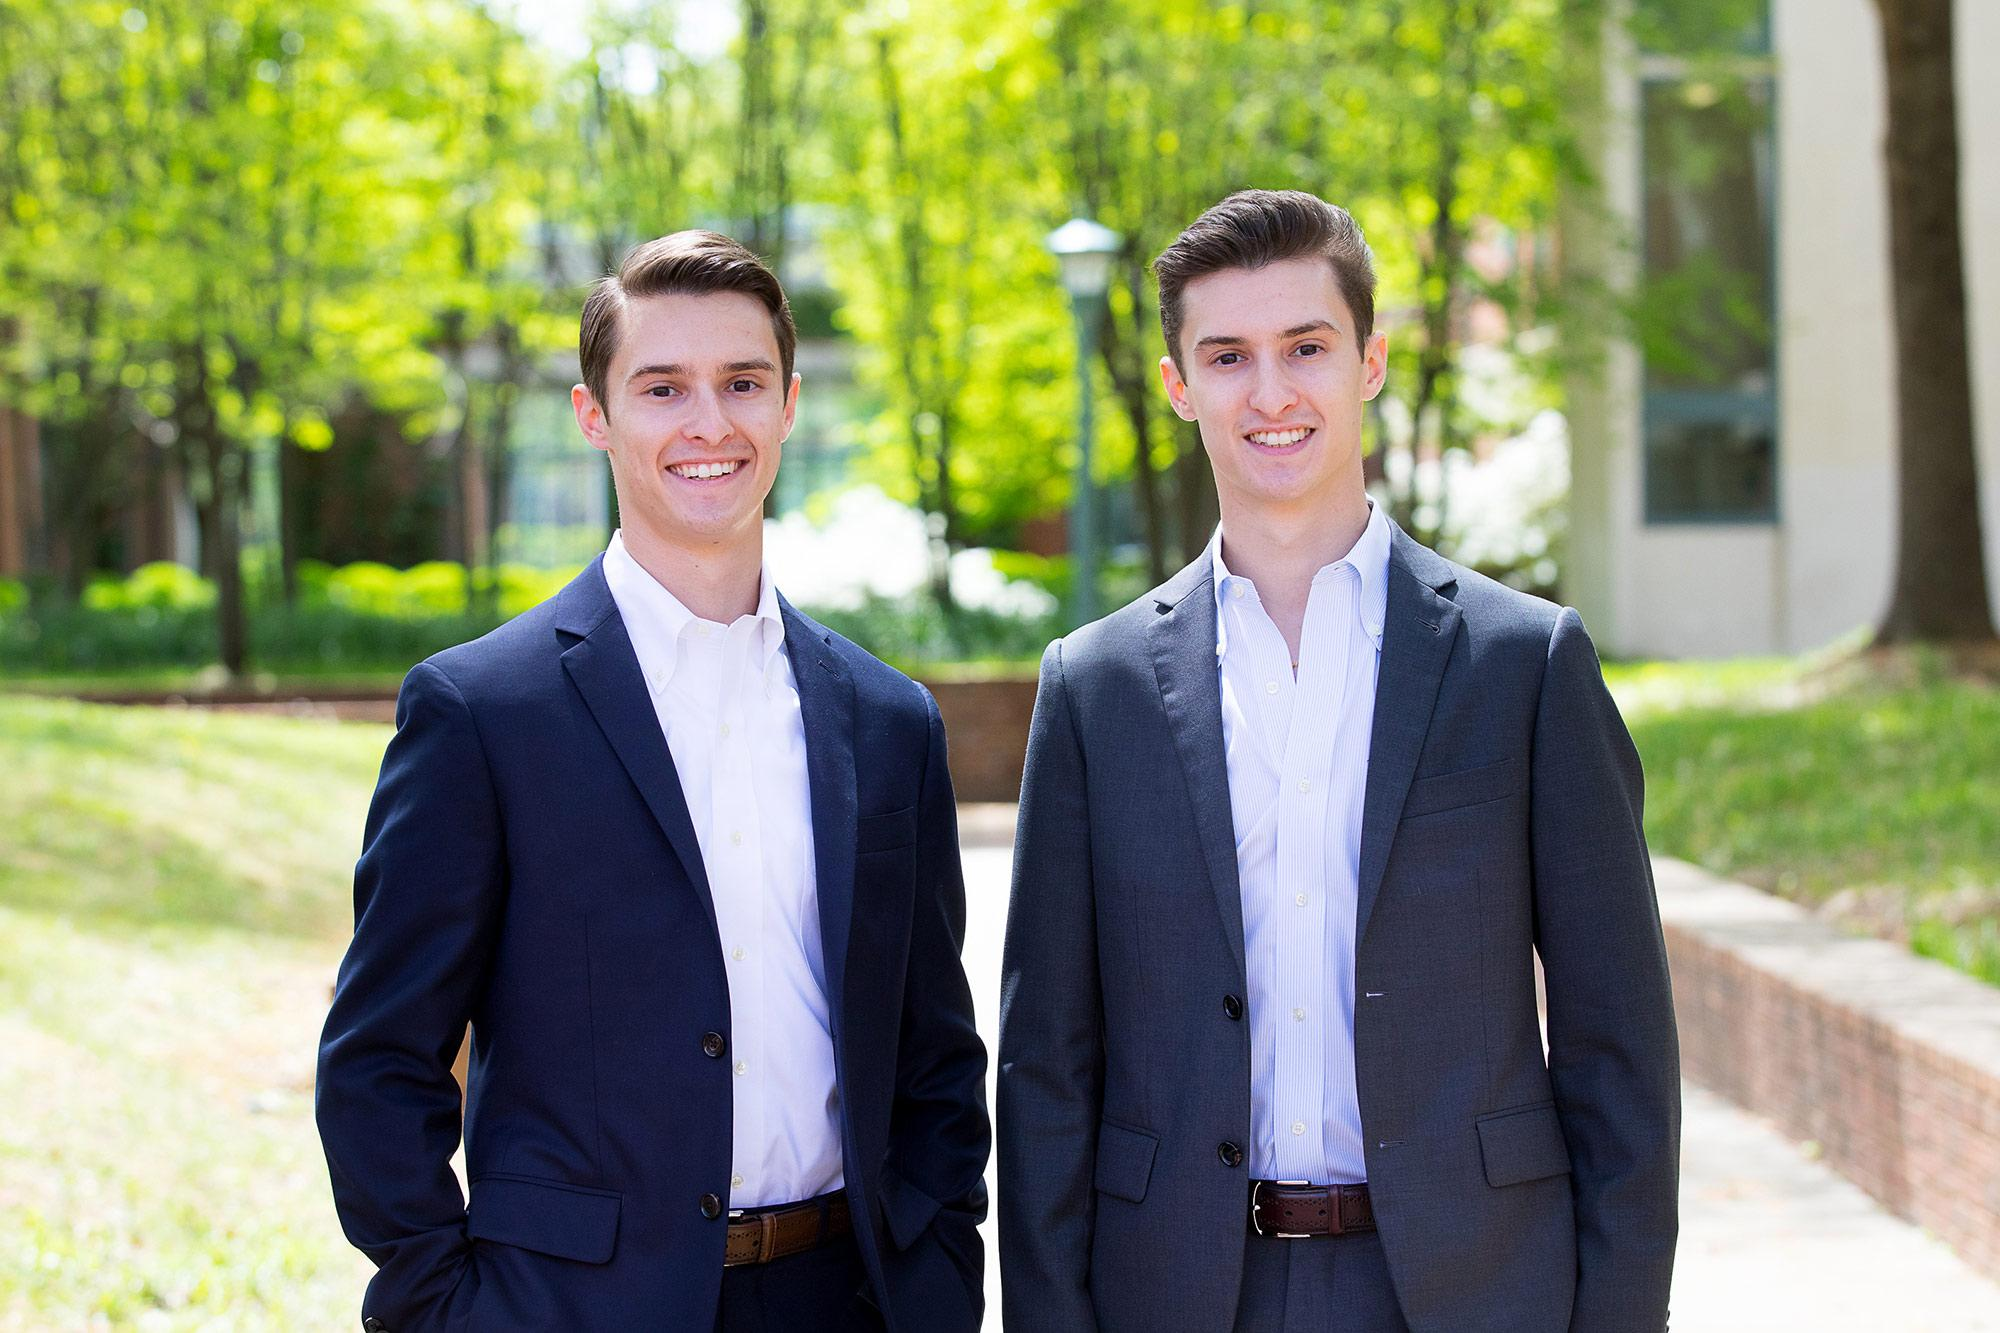 Brothers Zachary and Alexander Nemtzow are headed for the same law firm after graduation. They will both work as patent attorneys in Boston.